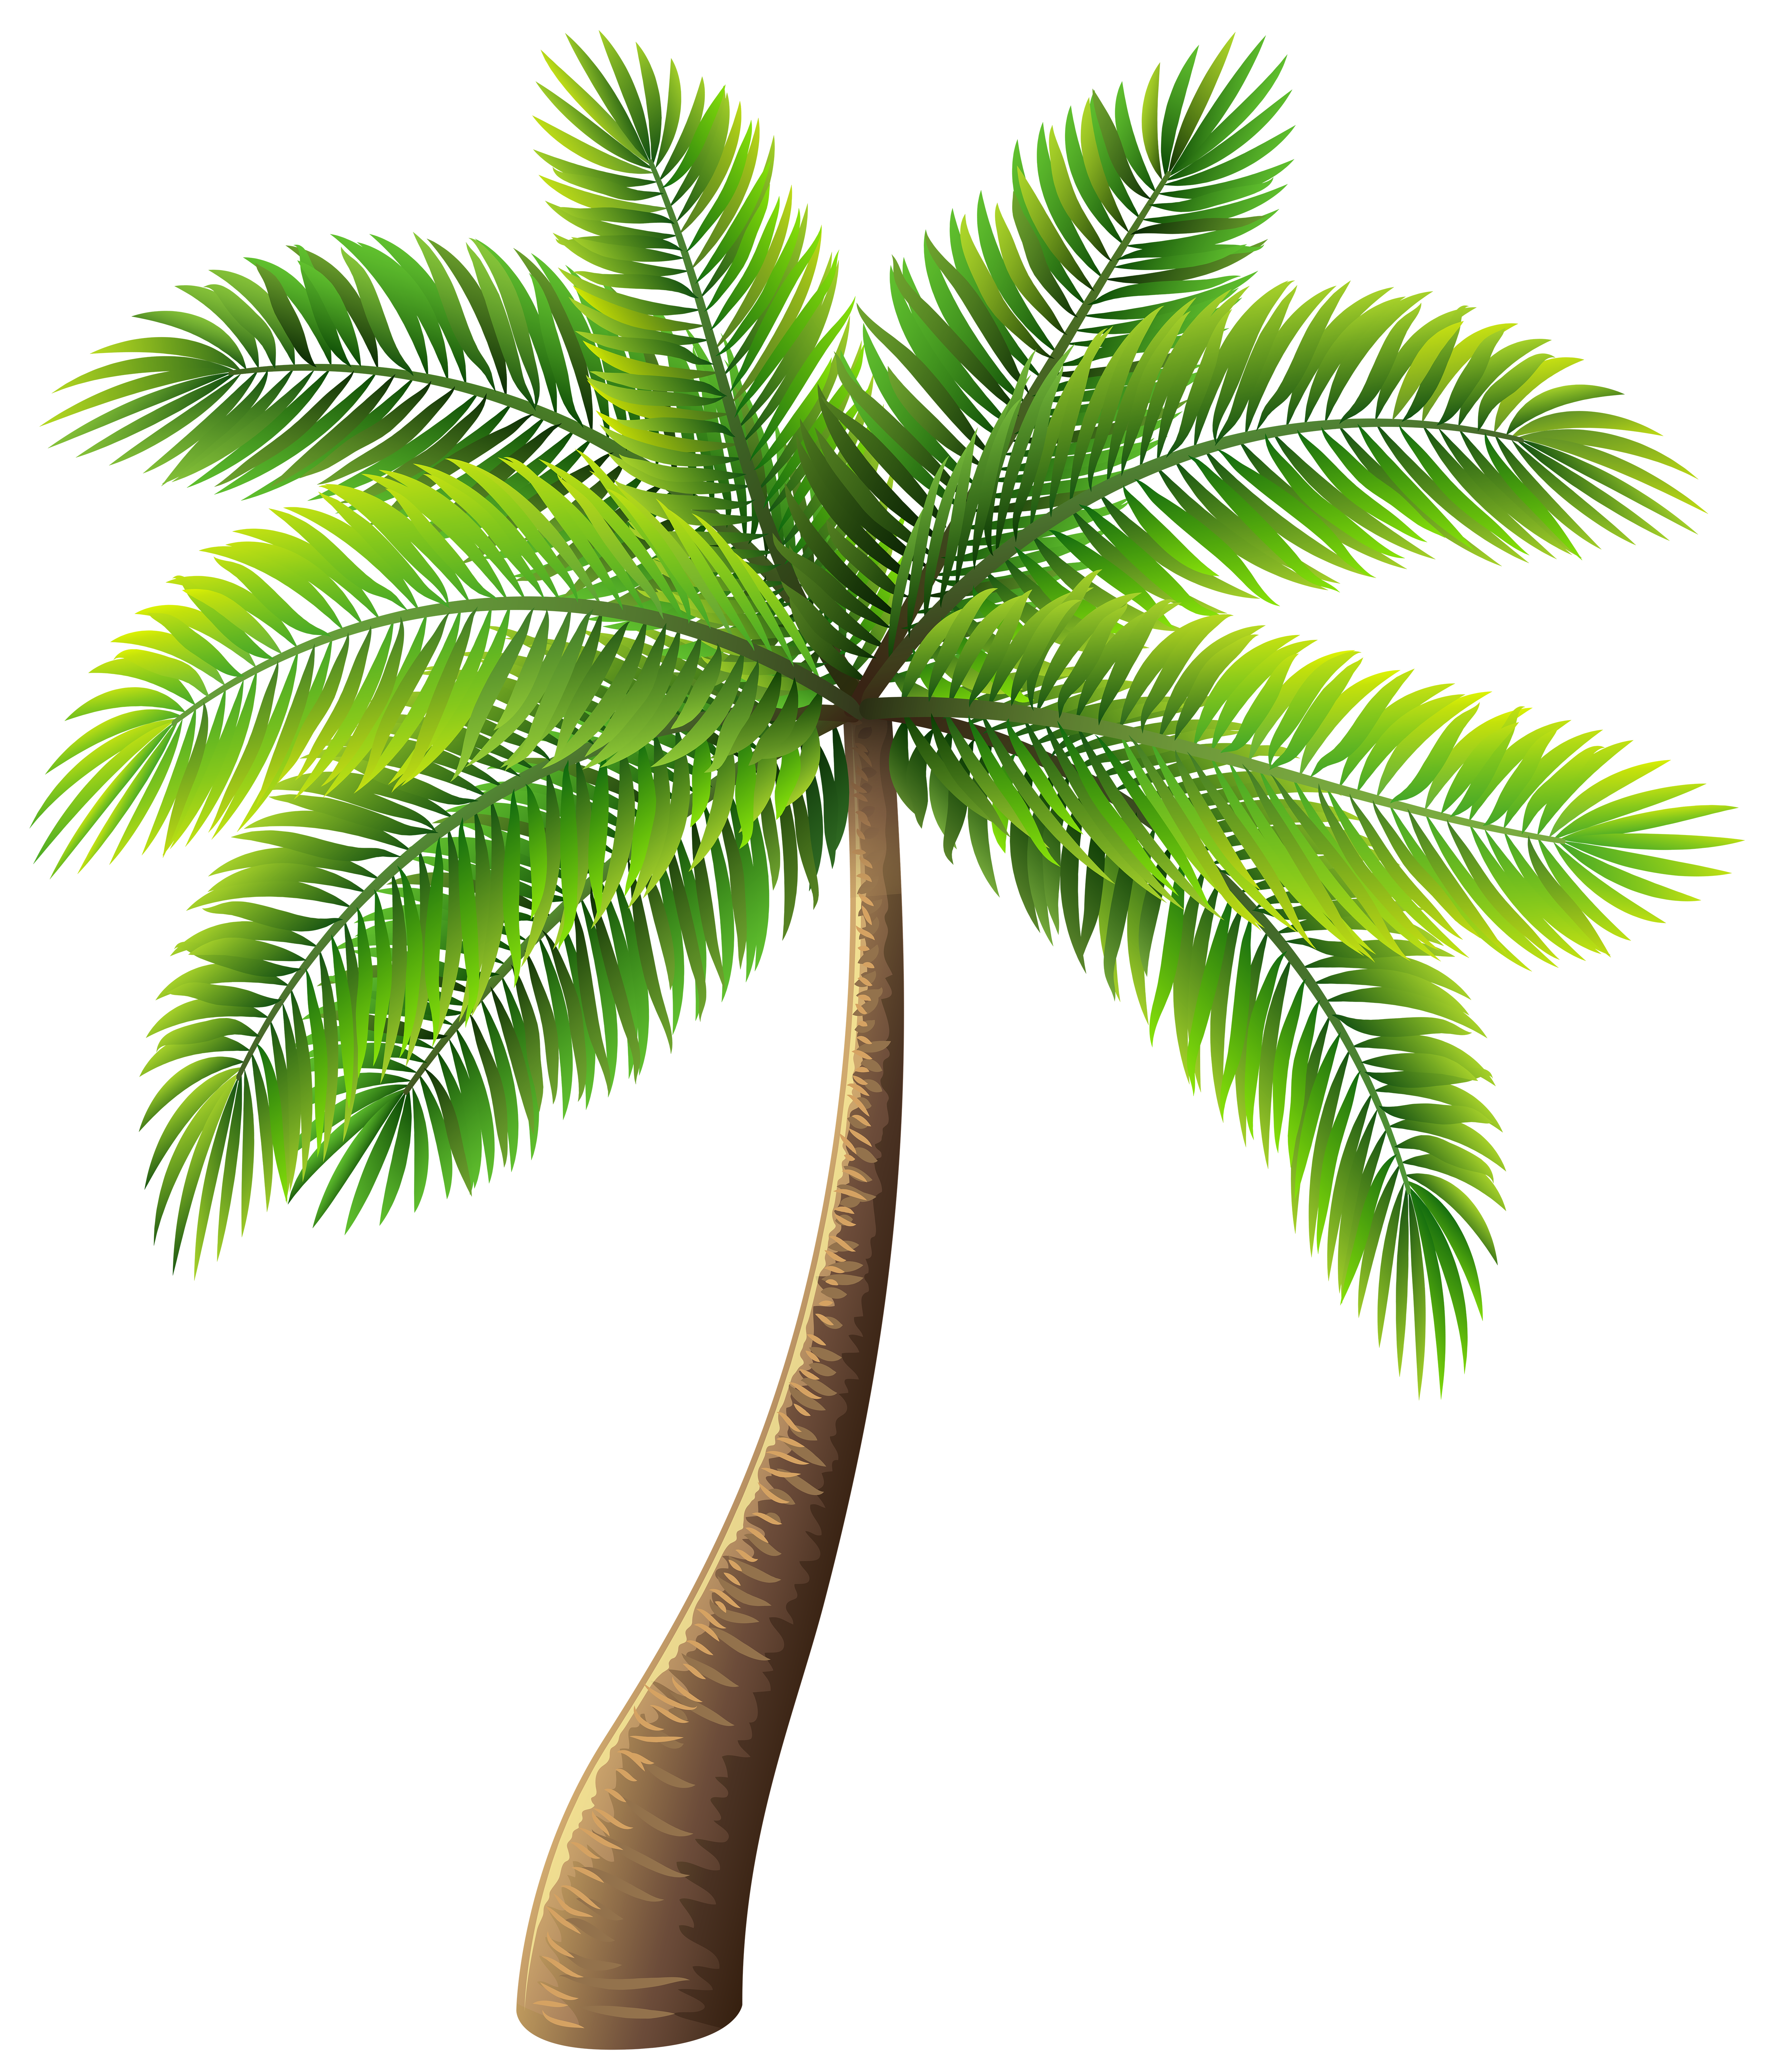 image library download Palm clipart. Tree png clip art.